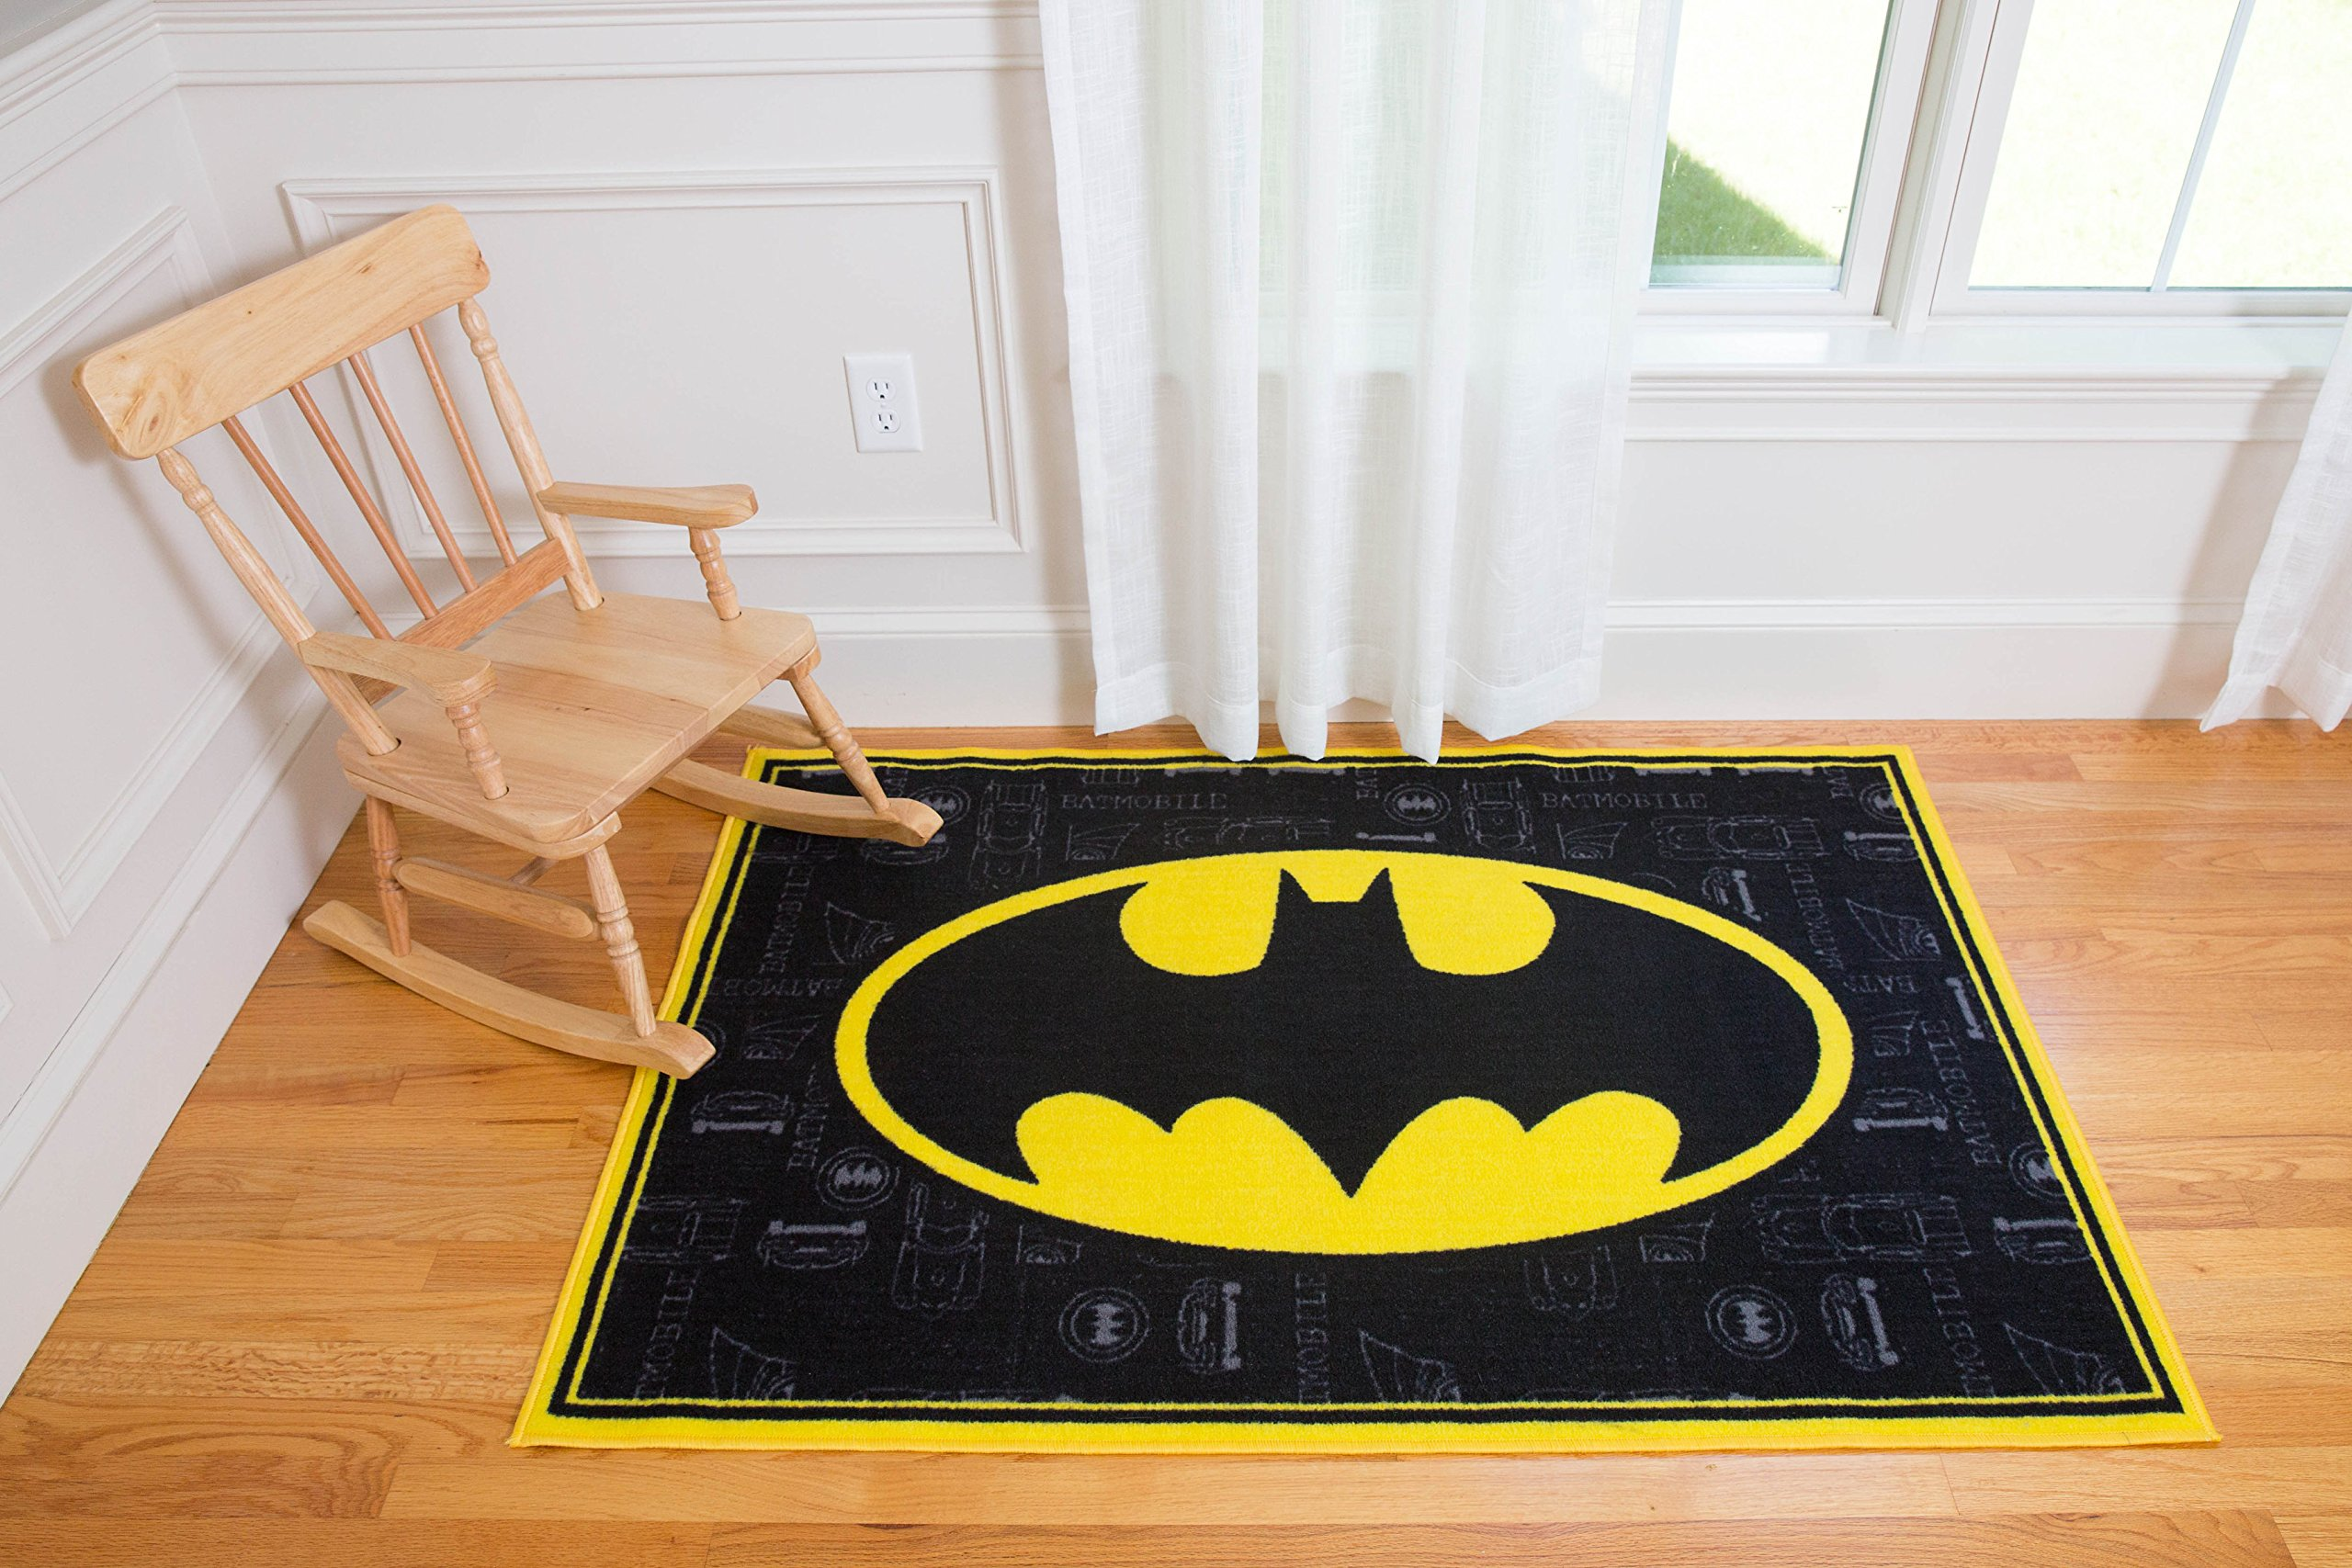 Play Rug, Wildkin Children's 39 x 58 Inch Rug, Durable, Vibrant Colors That Will Last, Perfect for Nurseries, Playrooms, and Classrooms, Ages 3+ - Batman